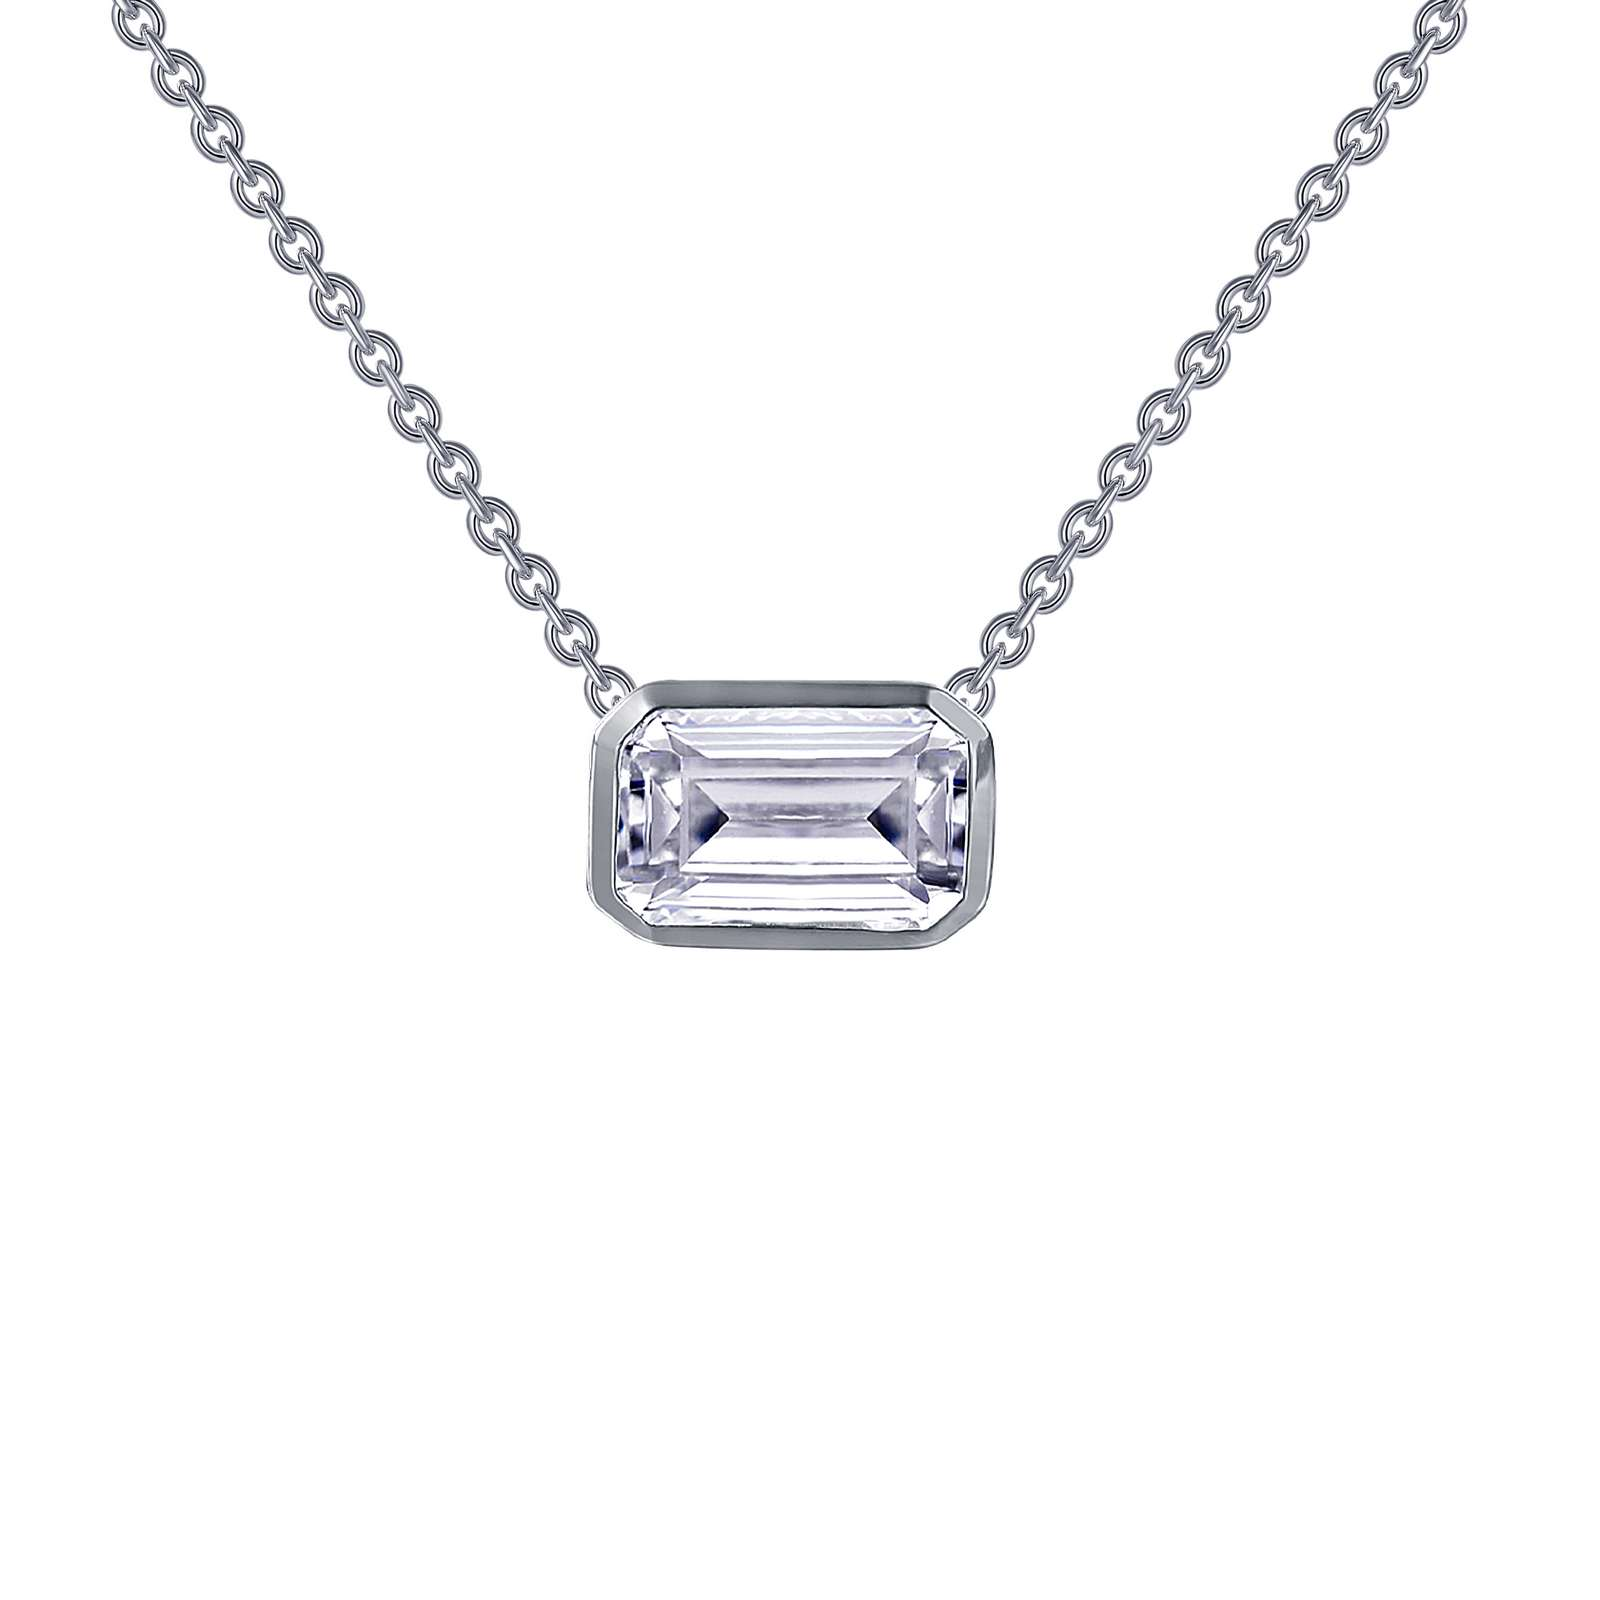 Monte Carlo Necklace - An elegant statement for any occasion. This adjustable choker necklace features an emerald-cut bezel-set Lafonn's signature Lassaire simulated diamond. The necklace is in sterling silver bonded with platinum.